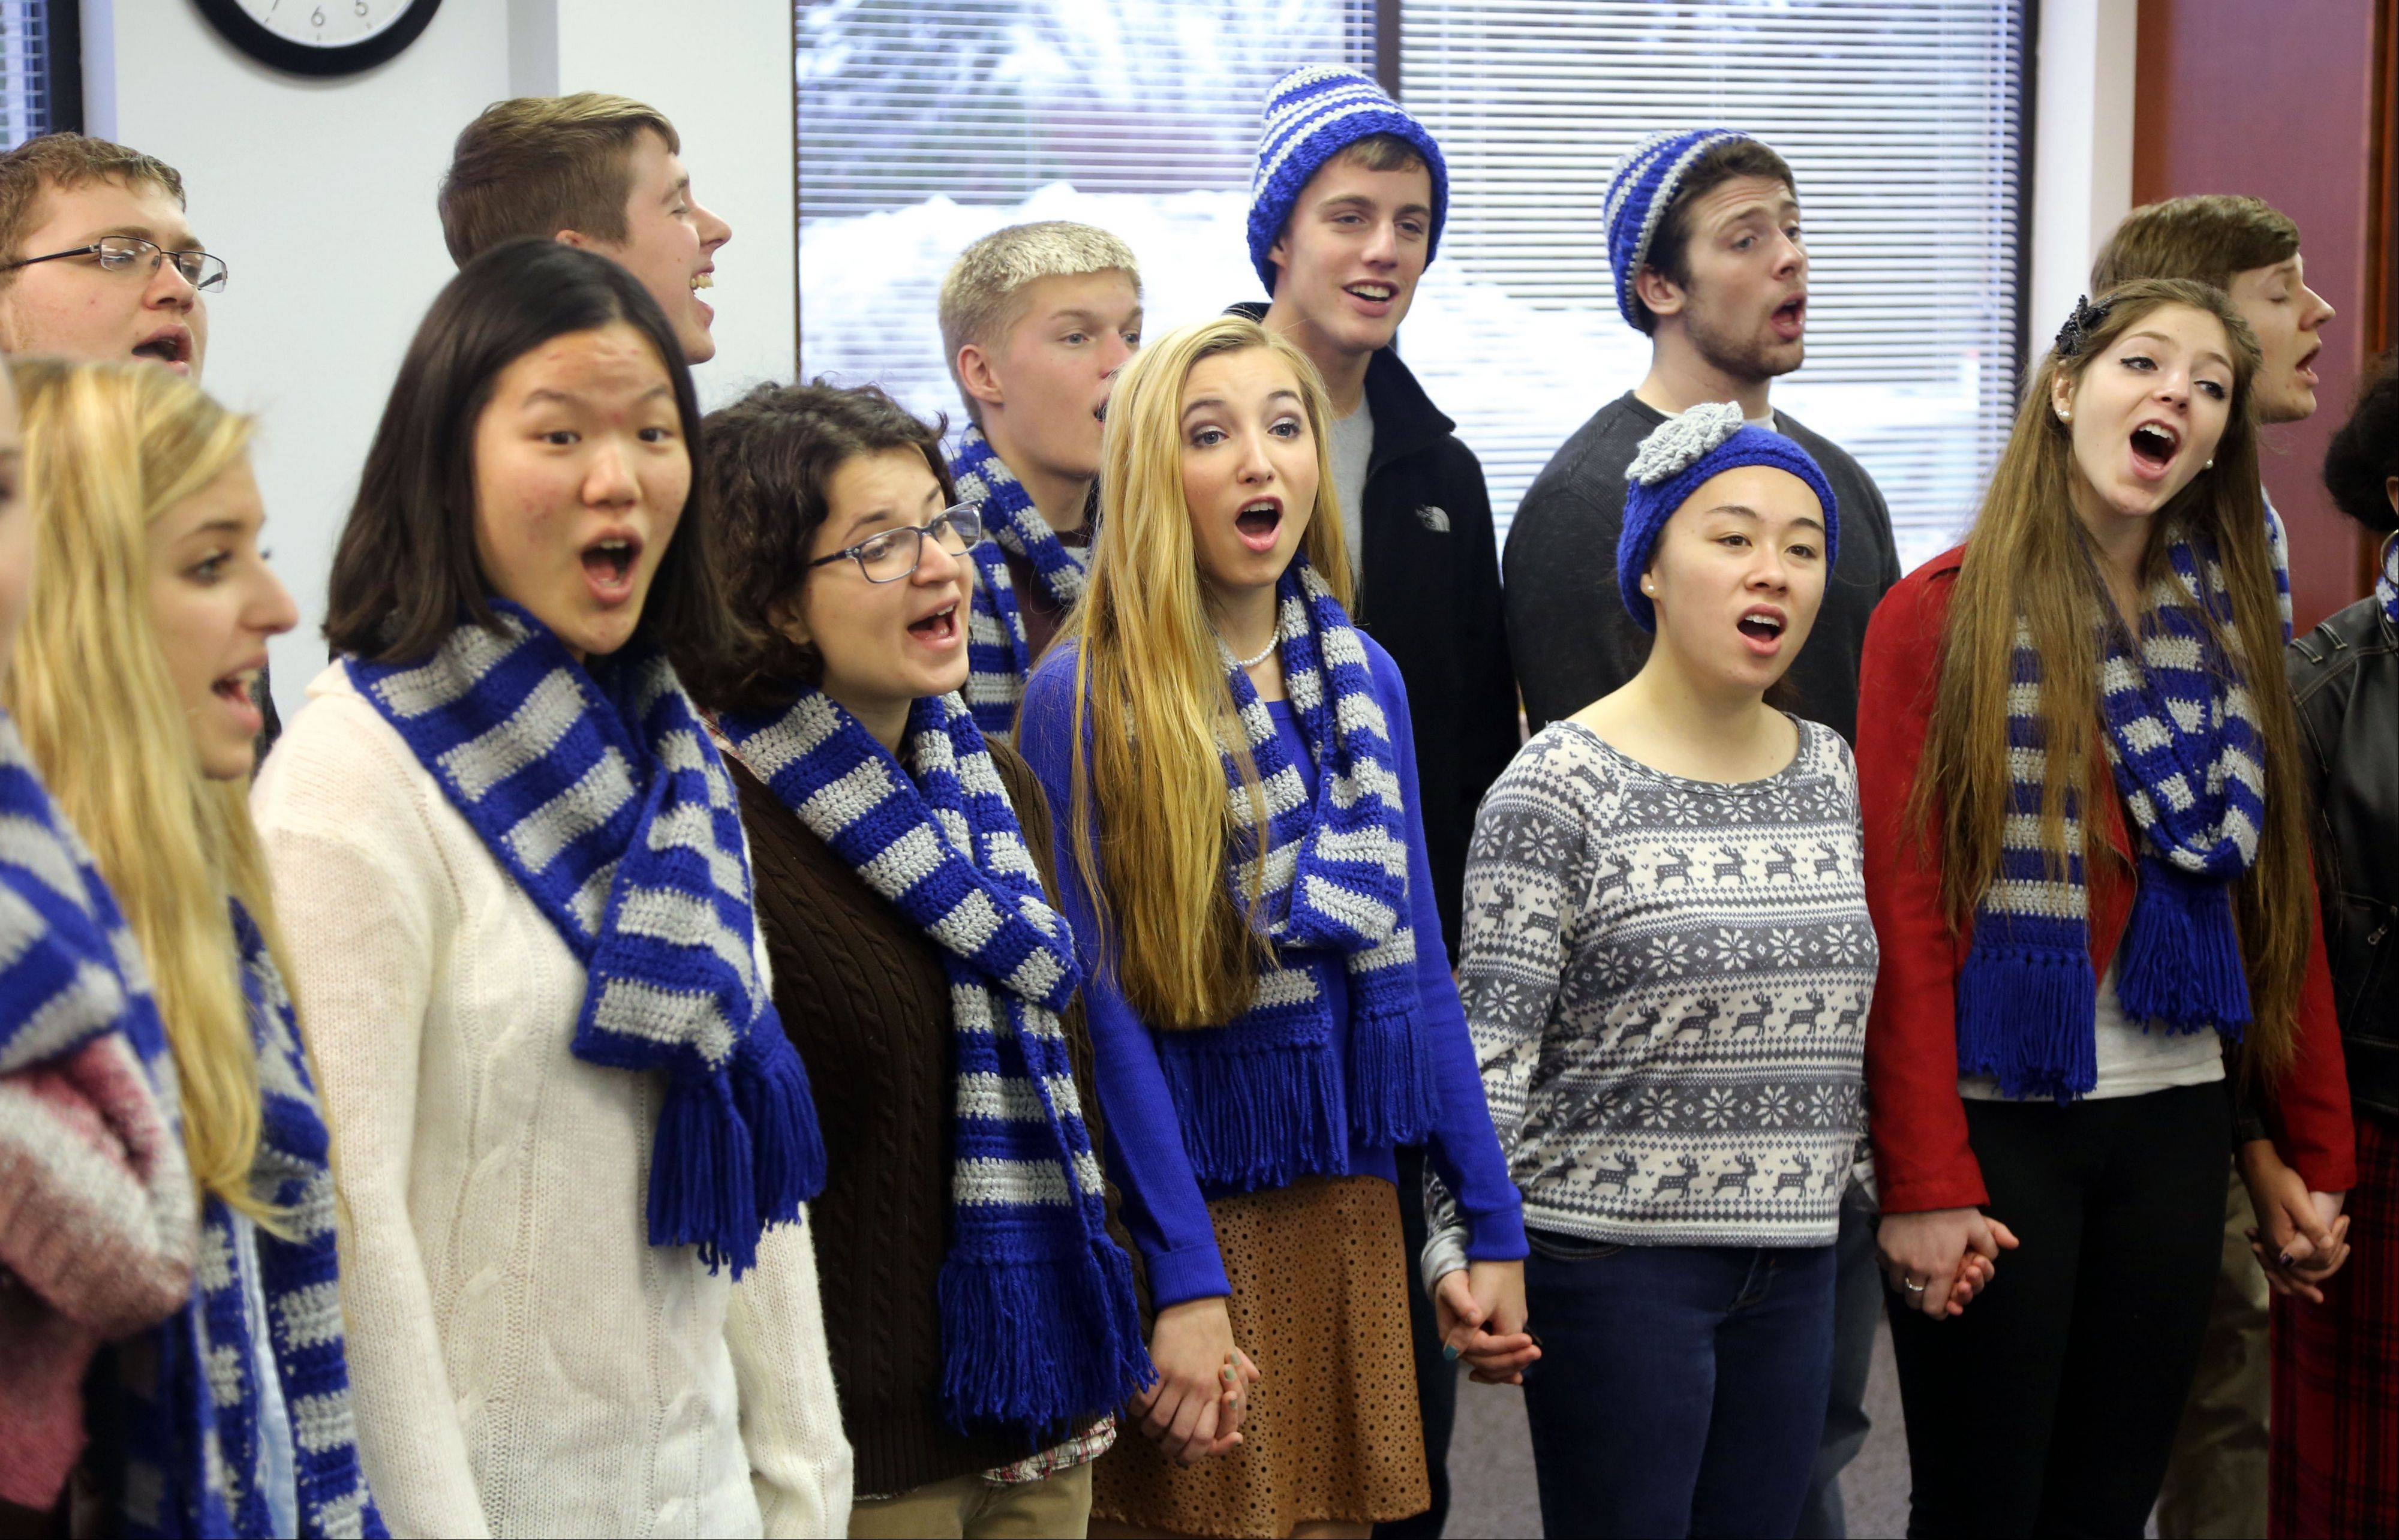 The Vernon Hills High School chamber choir performs Christmas carols for the Libertyville-Vernon Hills Area High School District 128 office Friday in Vernon Hills.